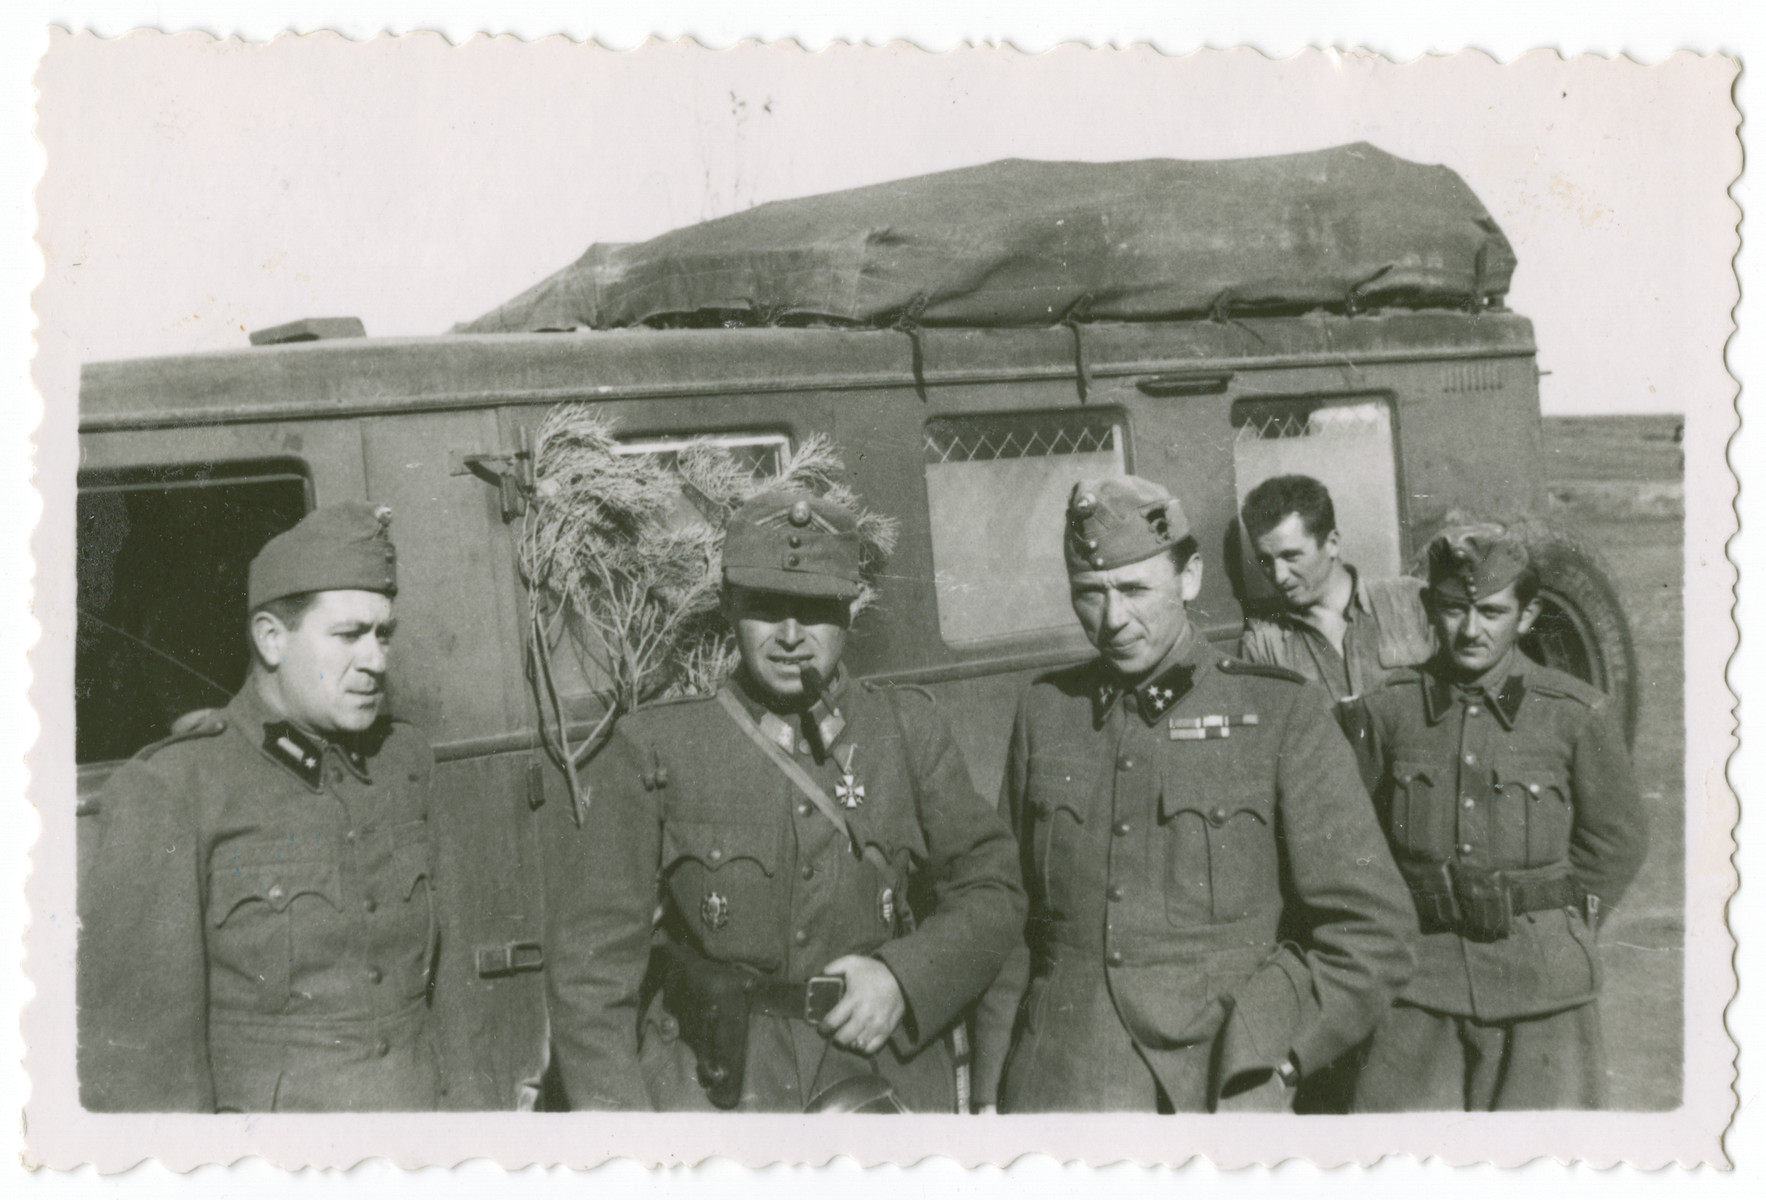 Karoly Deme, third from the left, poses among other members of the Hungarian 20th Infantry Division.